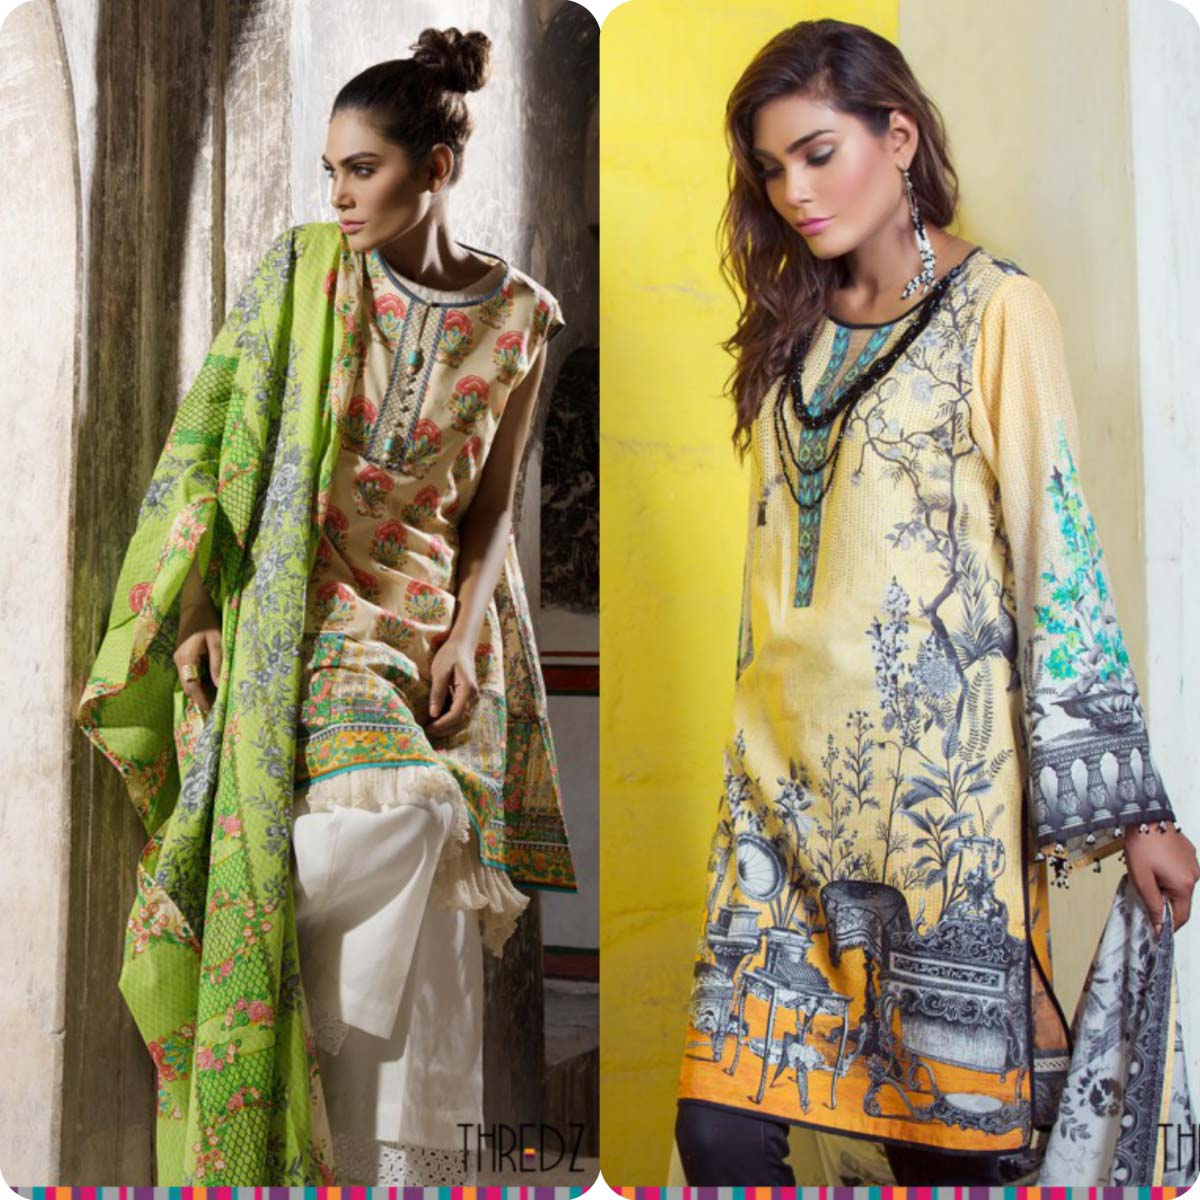 Stylish Embroidered Eid KurtisTunics for Girls By THREDZ 2016-2016 Complete Look-Book (4)